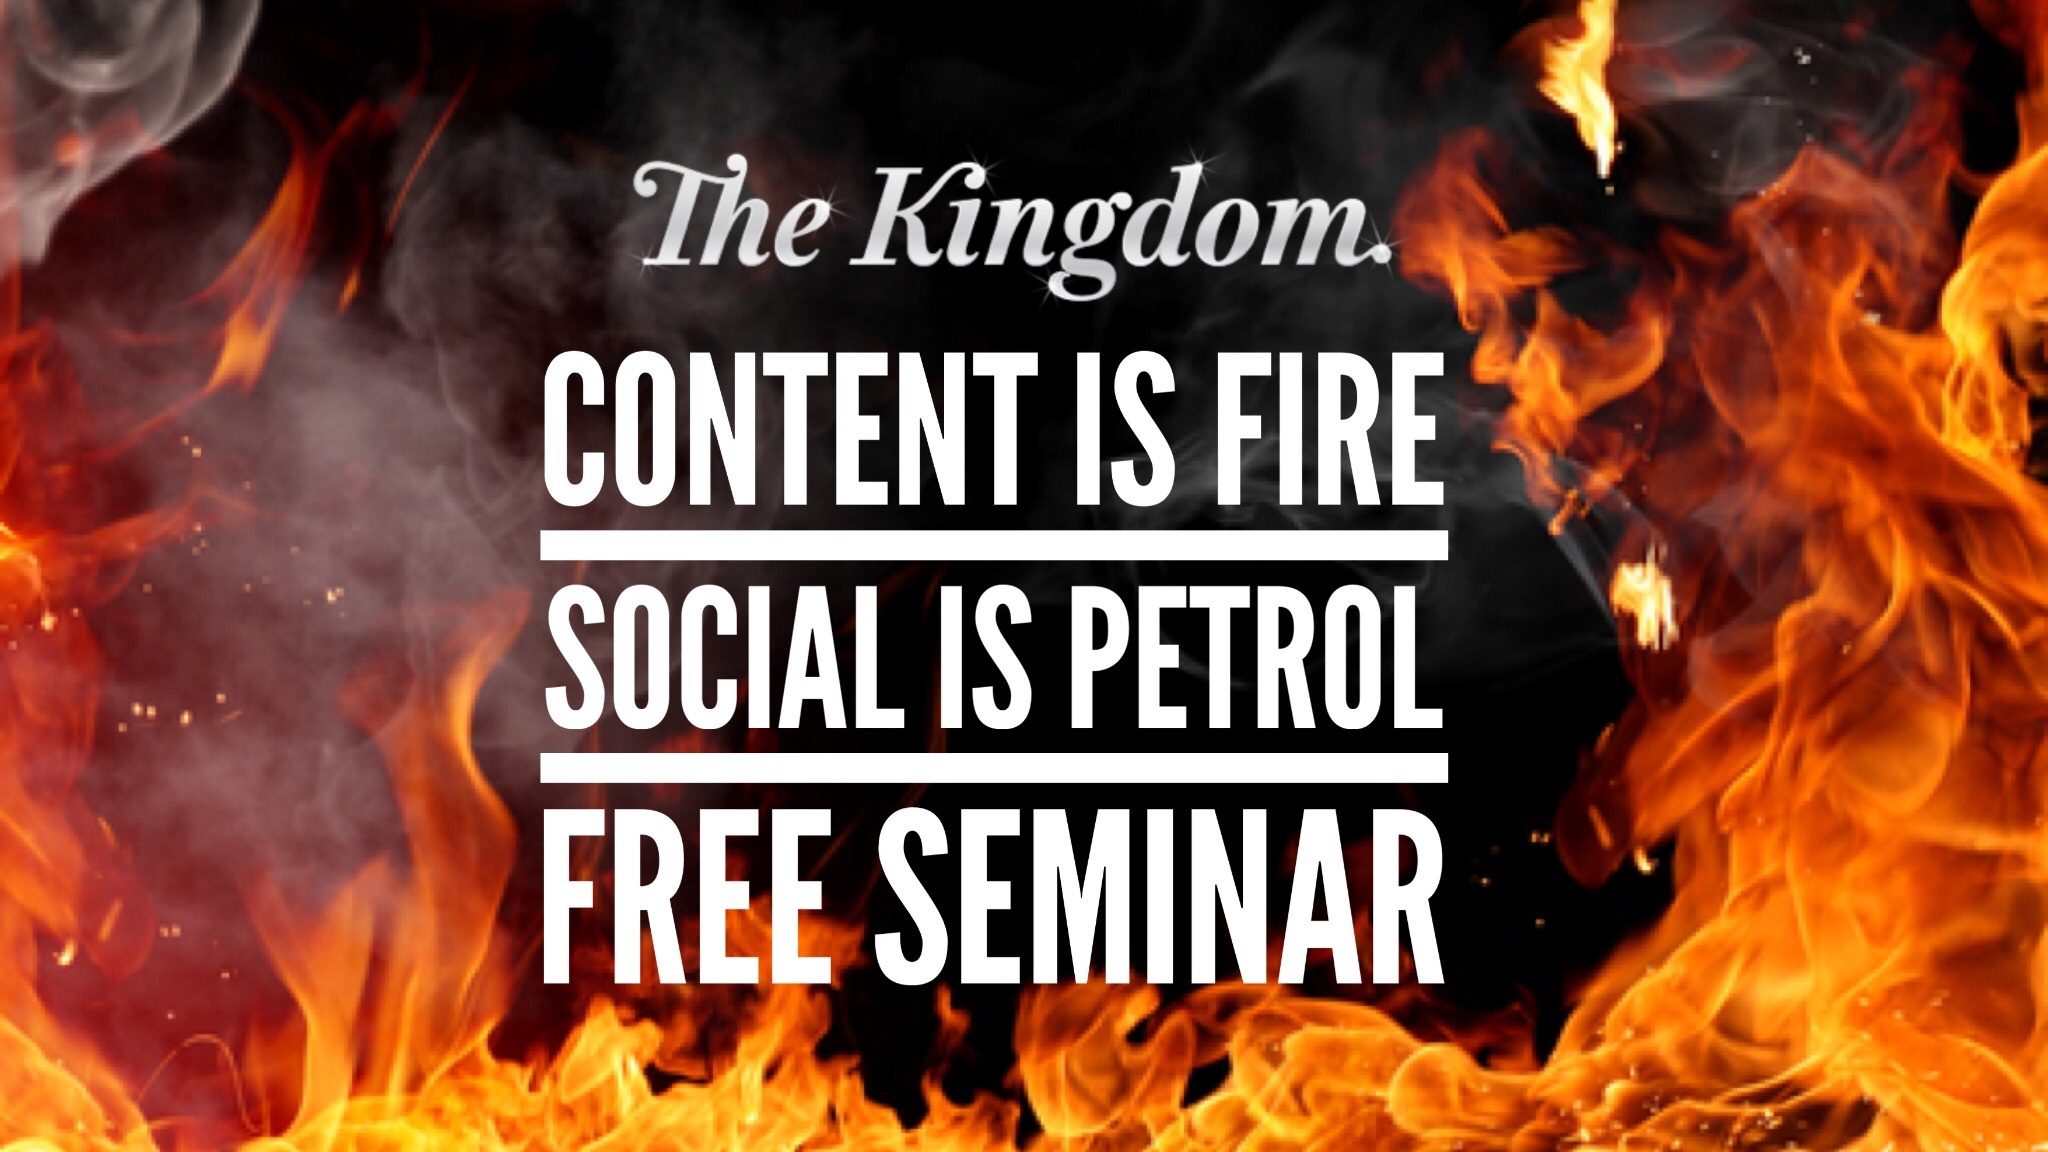 The Kingdom Free Seminar